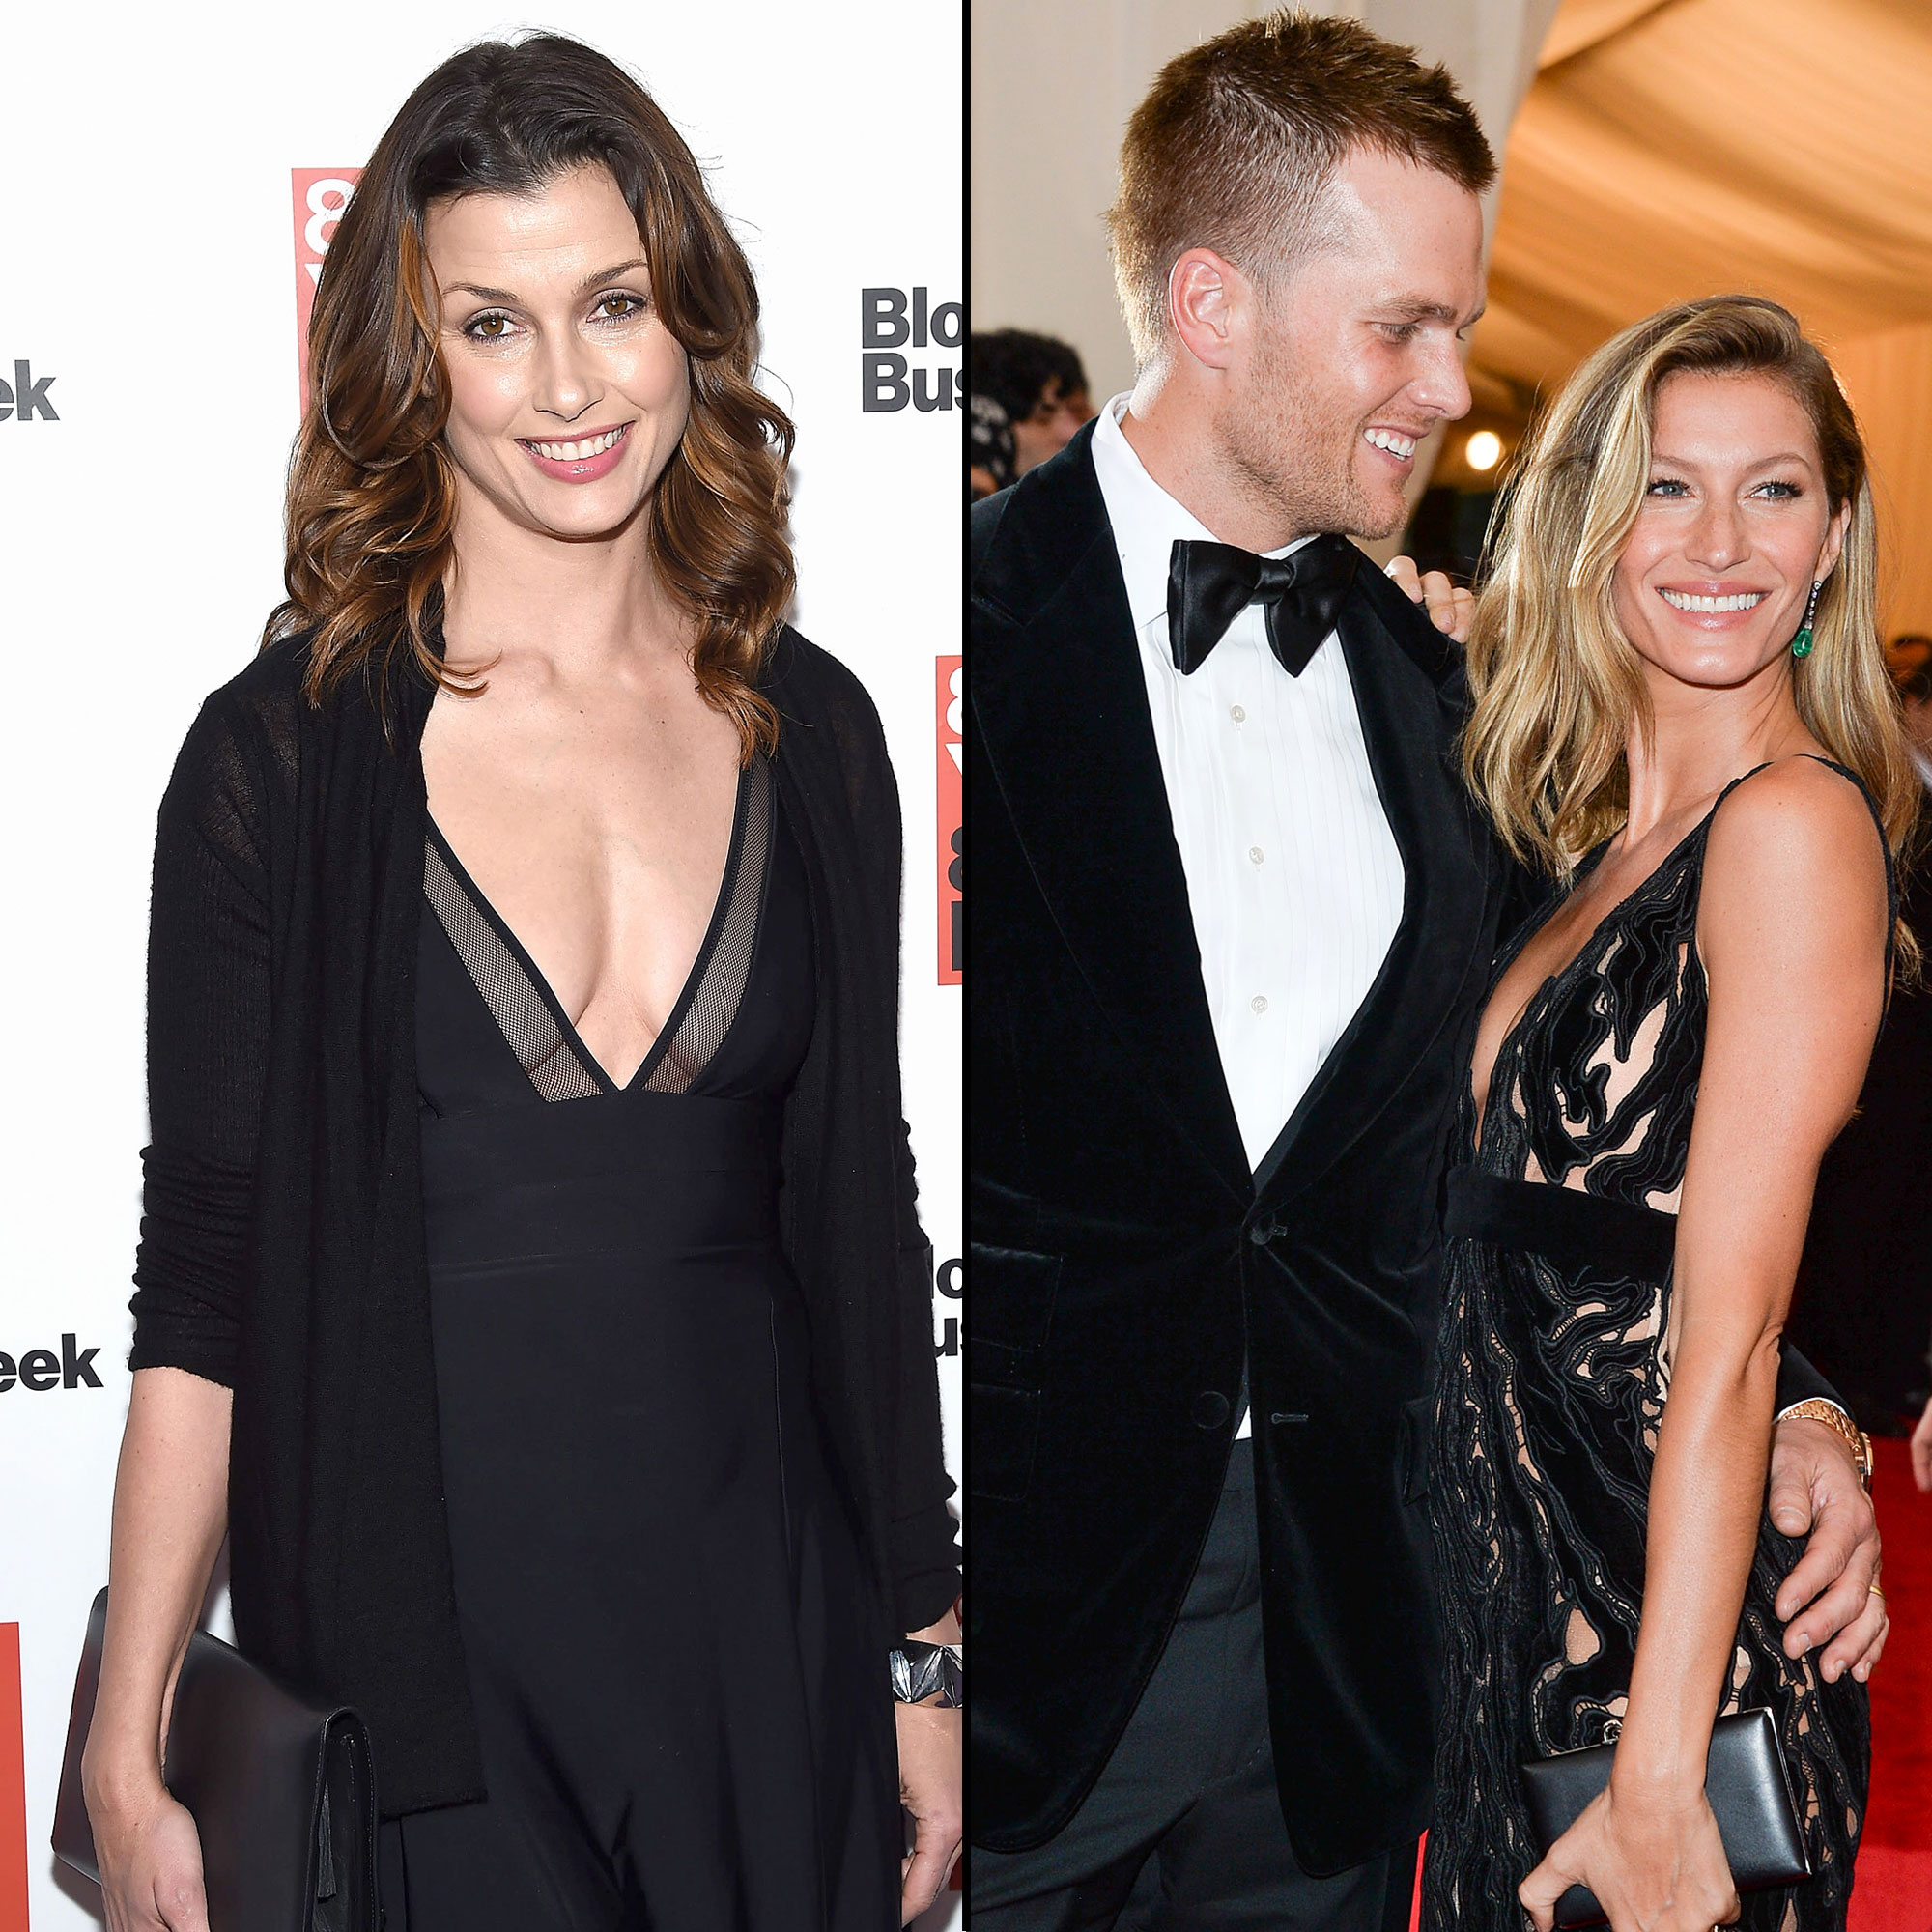 Look Back at Tom Brady and Bridget Moynahan's Rocky Relationship - After years of speculation that there was animosity between Moynahan, Brady and Bündchen, the trio was spotted together at the park in New York City in May 2014.